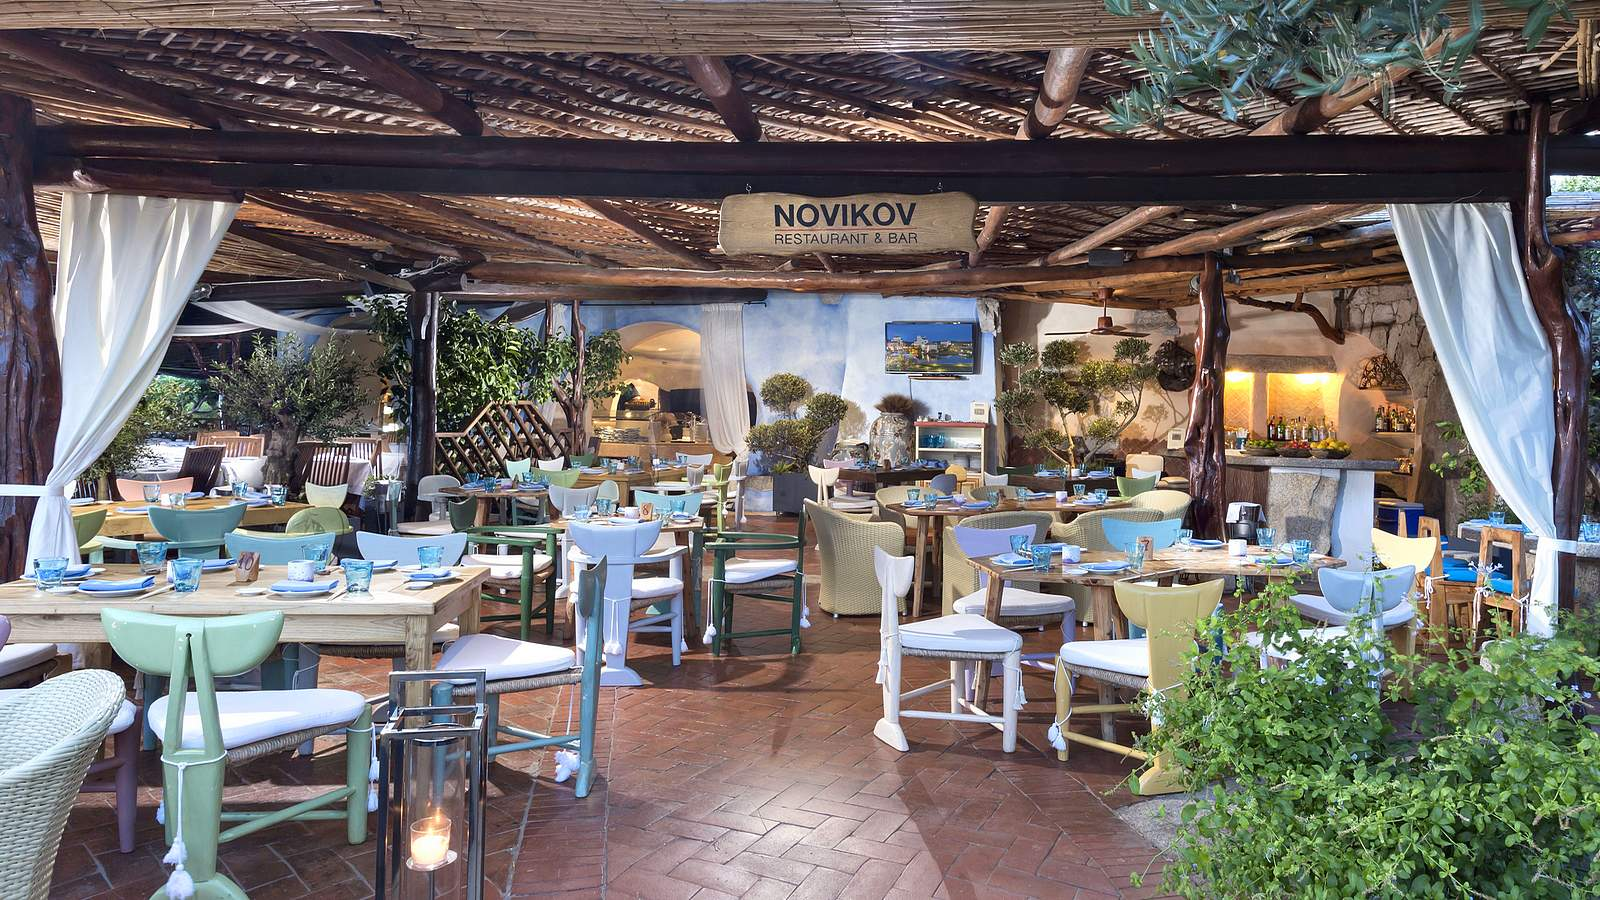 Novikov For Cala Di Volpe Restaurant